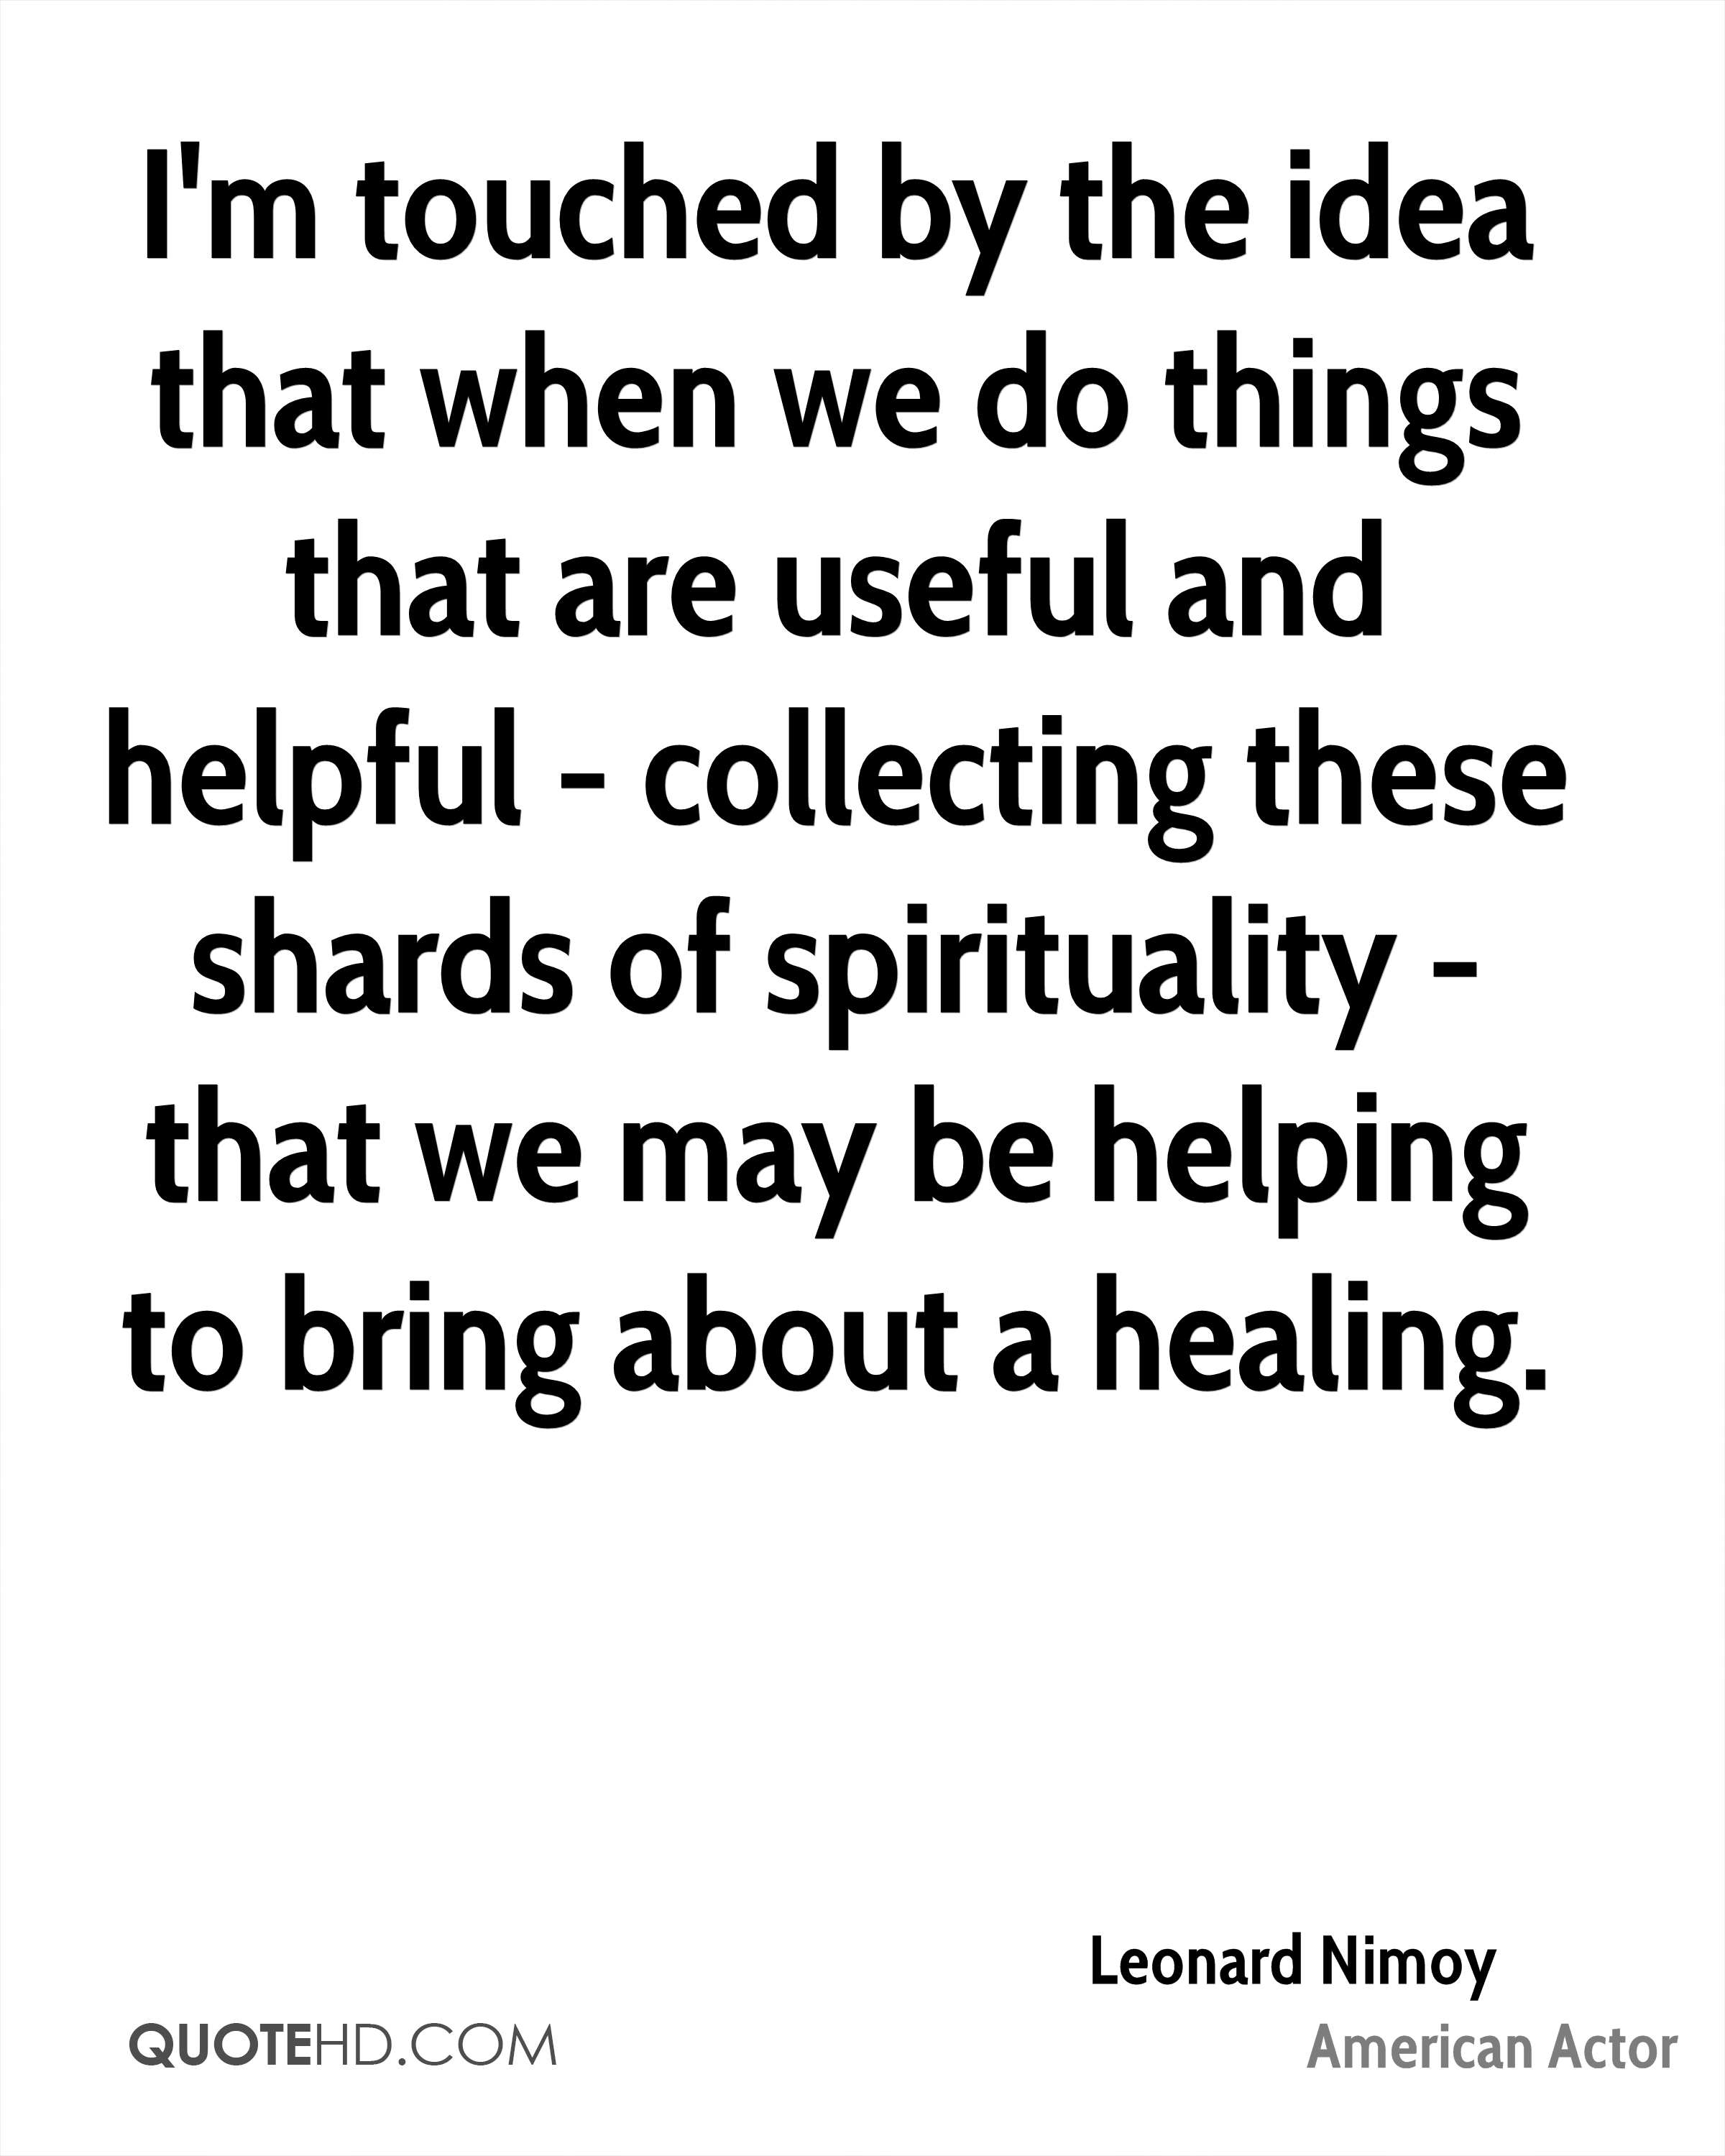 I'm touched by the idea that when we do things that are useful and helpful - collecting these shards of spirituality - that we may be helping to bring about a healing.